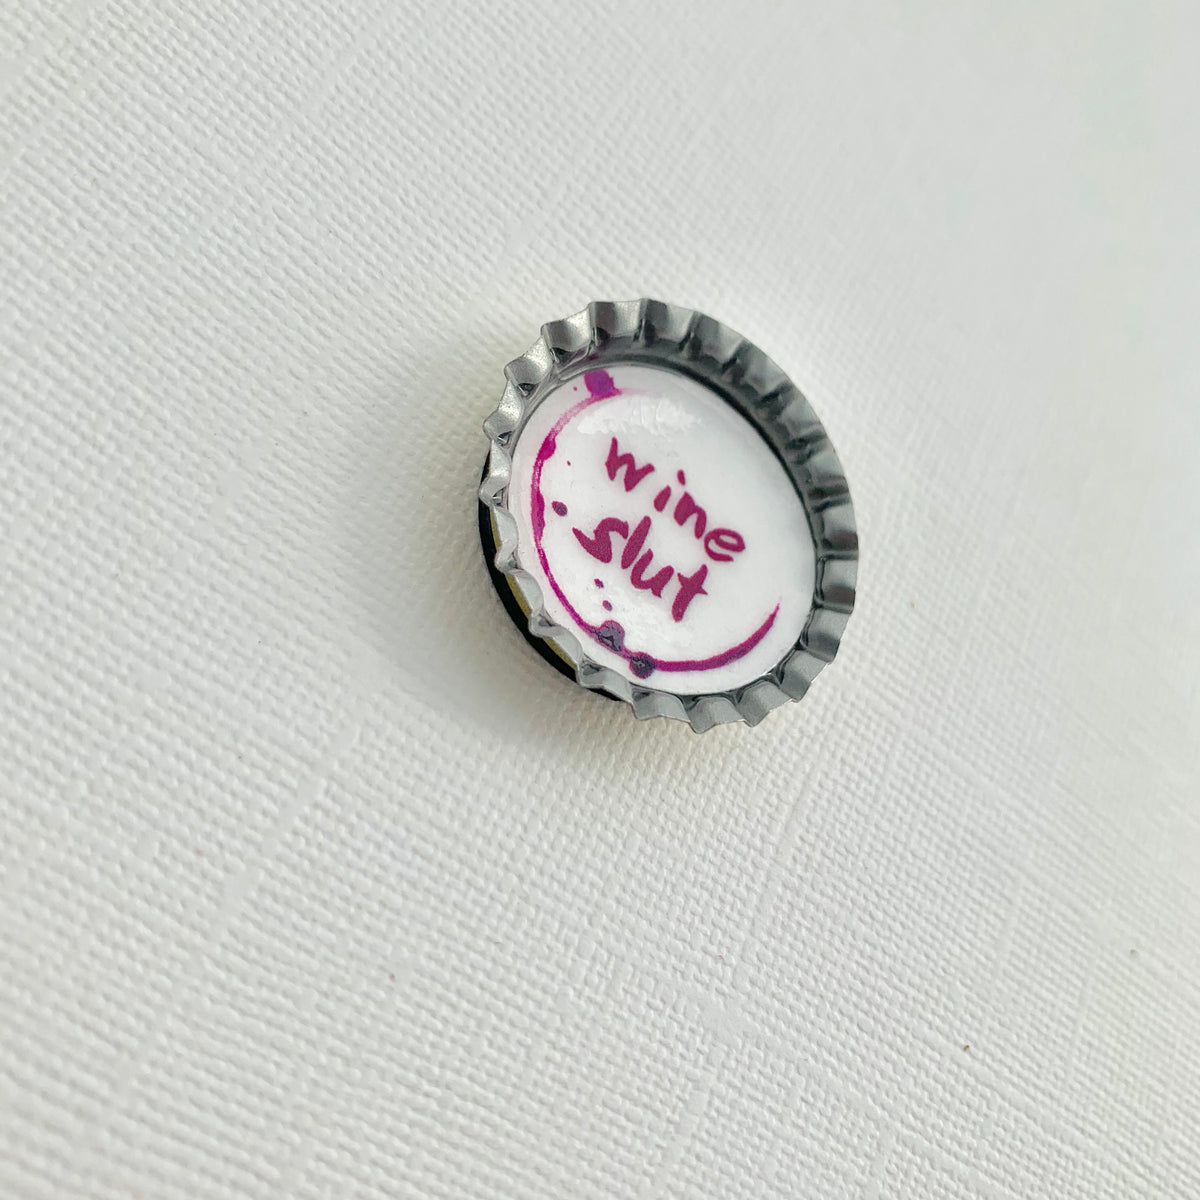 Muddy Mouth Cards Magnet Wine Slut